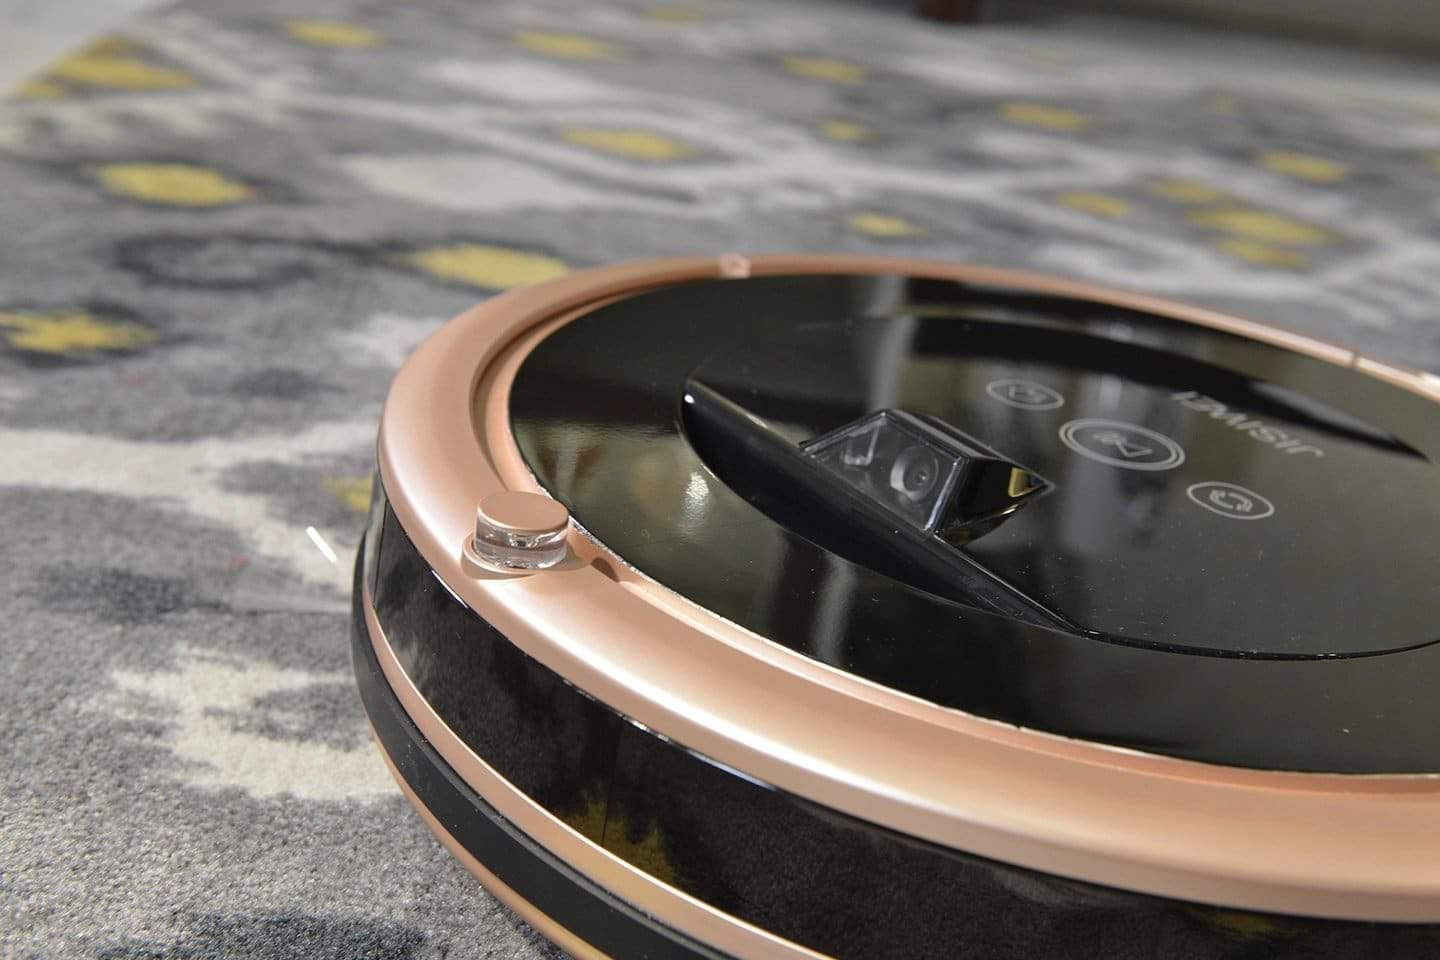 Introducing The Next Generation i5 Robot Vacuum Cleaner Expected To Hit IndieGoGo Soon - 4